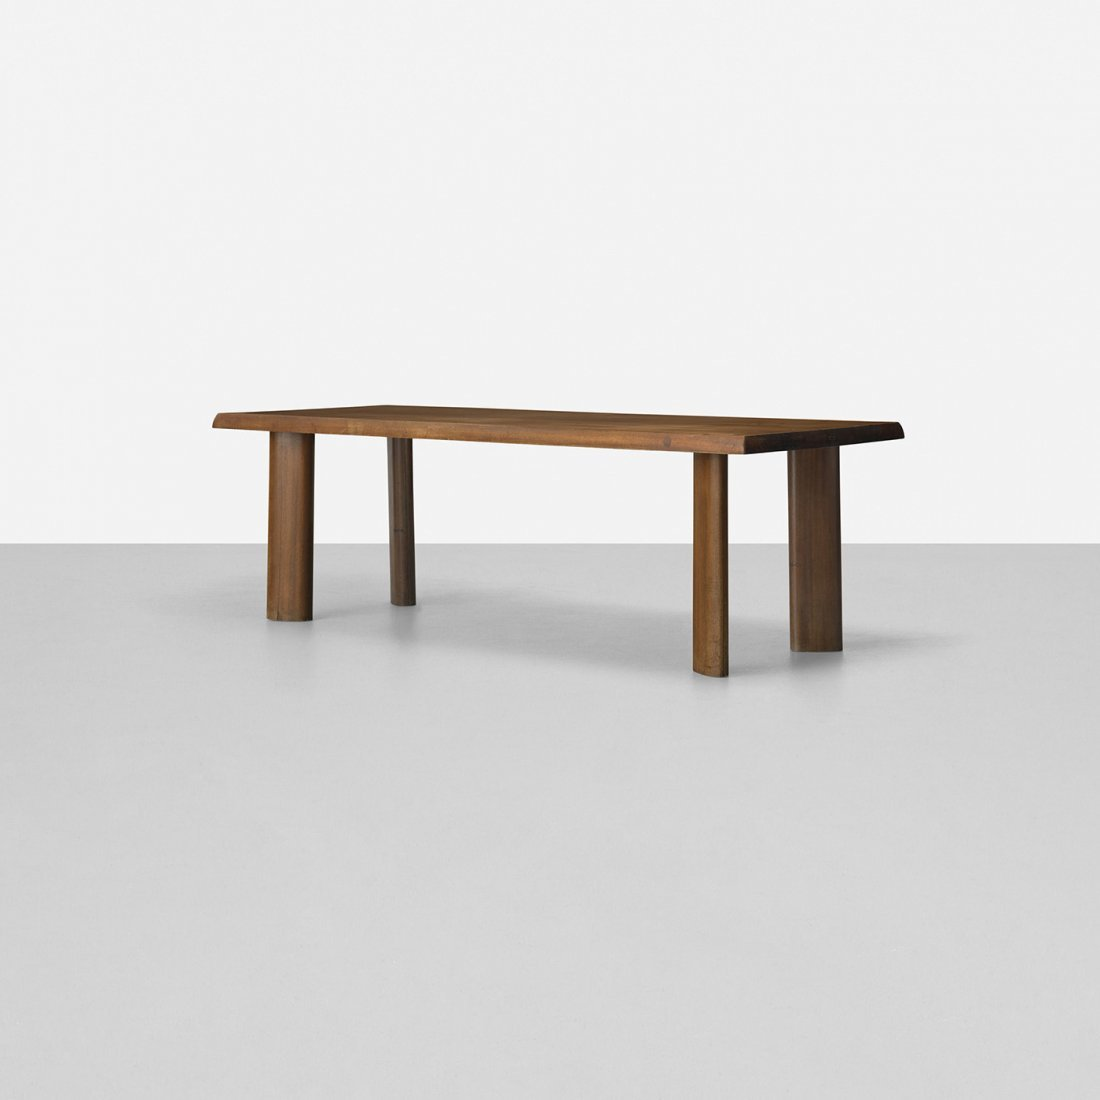 116: Charlotte Perriand Long dining table